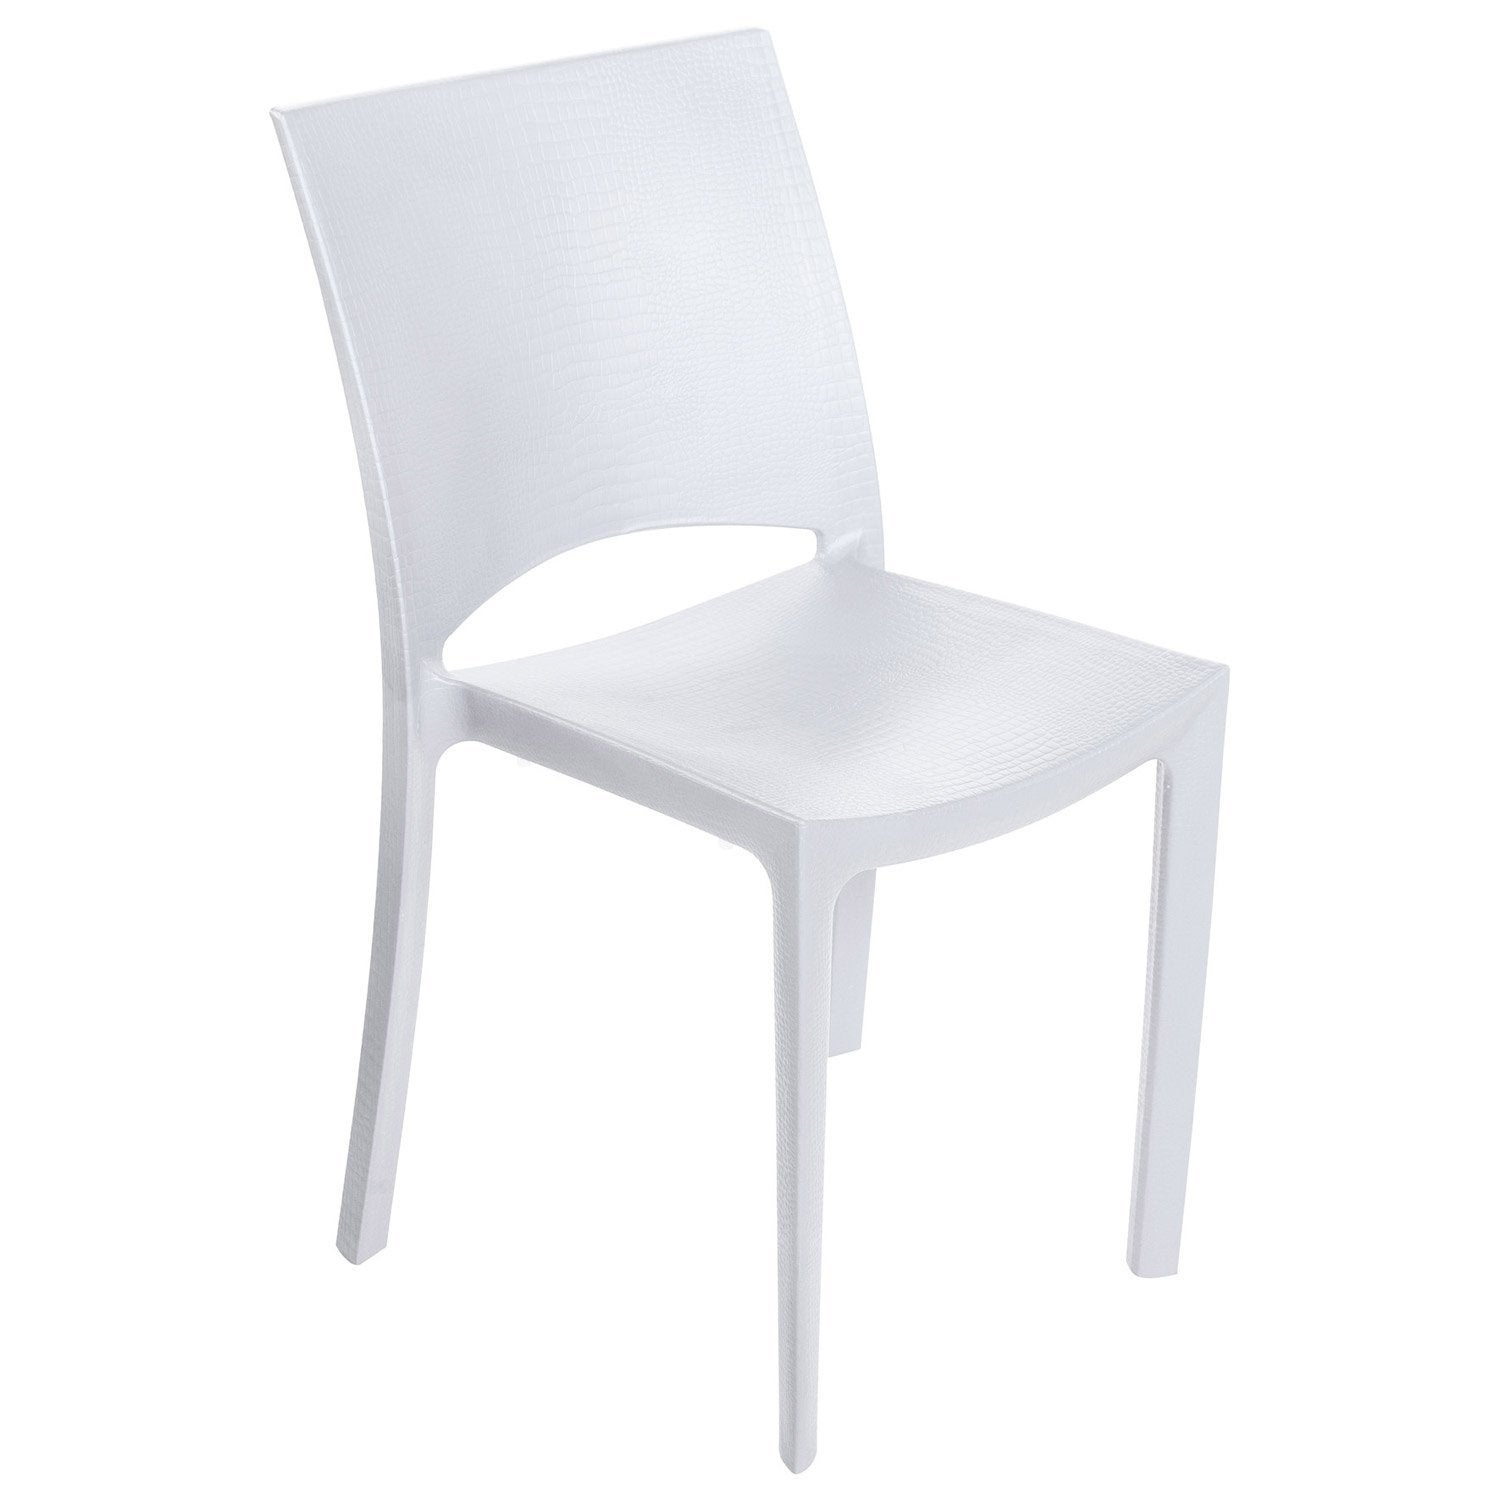 140 chaise de jardin blanche chaise de jardin en fer for Table bois chaise blanche